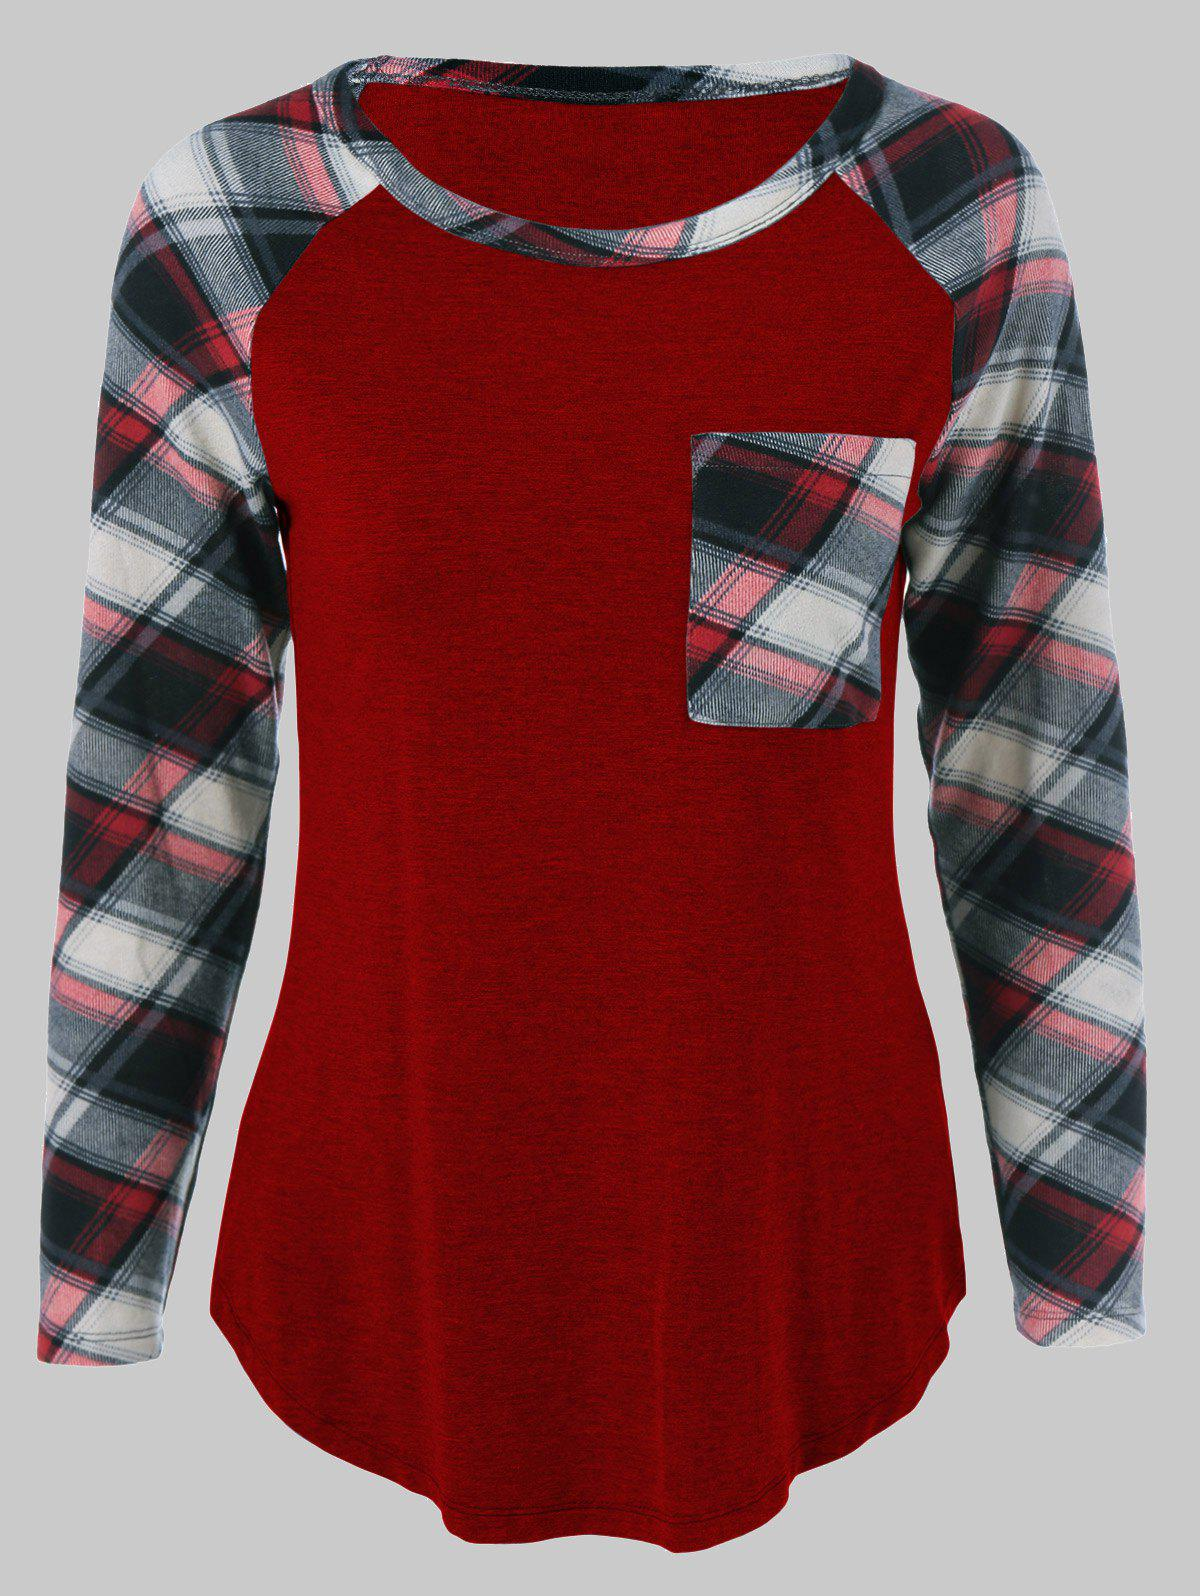 Plus Size One Pocket Plaid Long Sleeve T-Shirt the one plus one